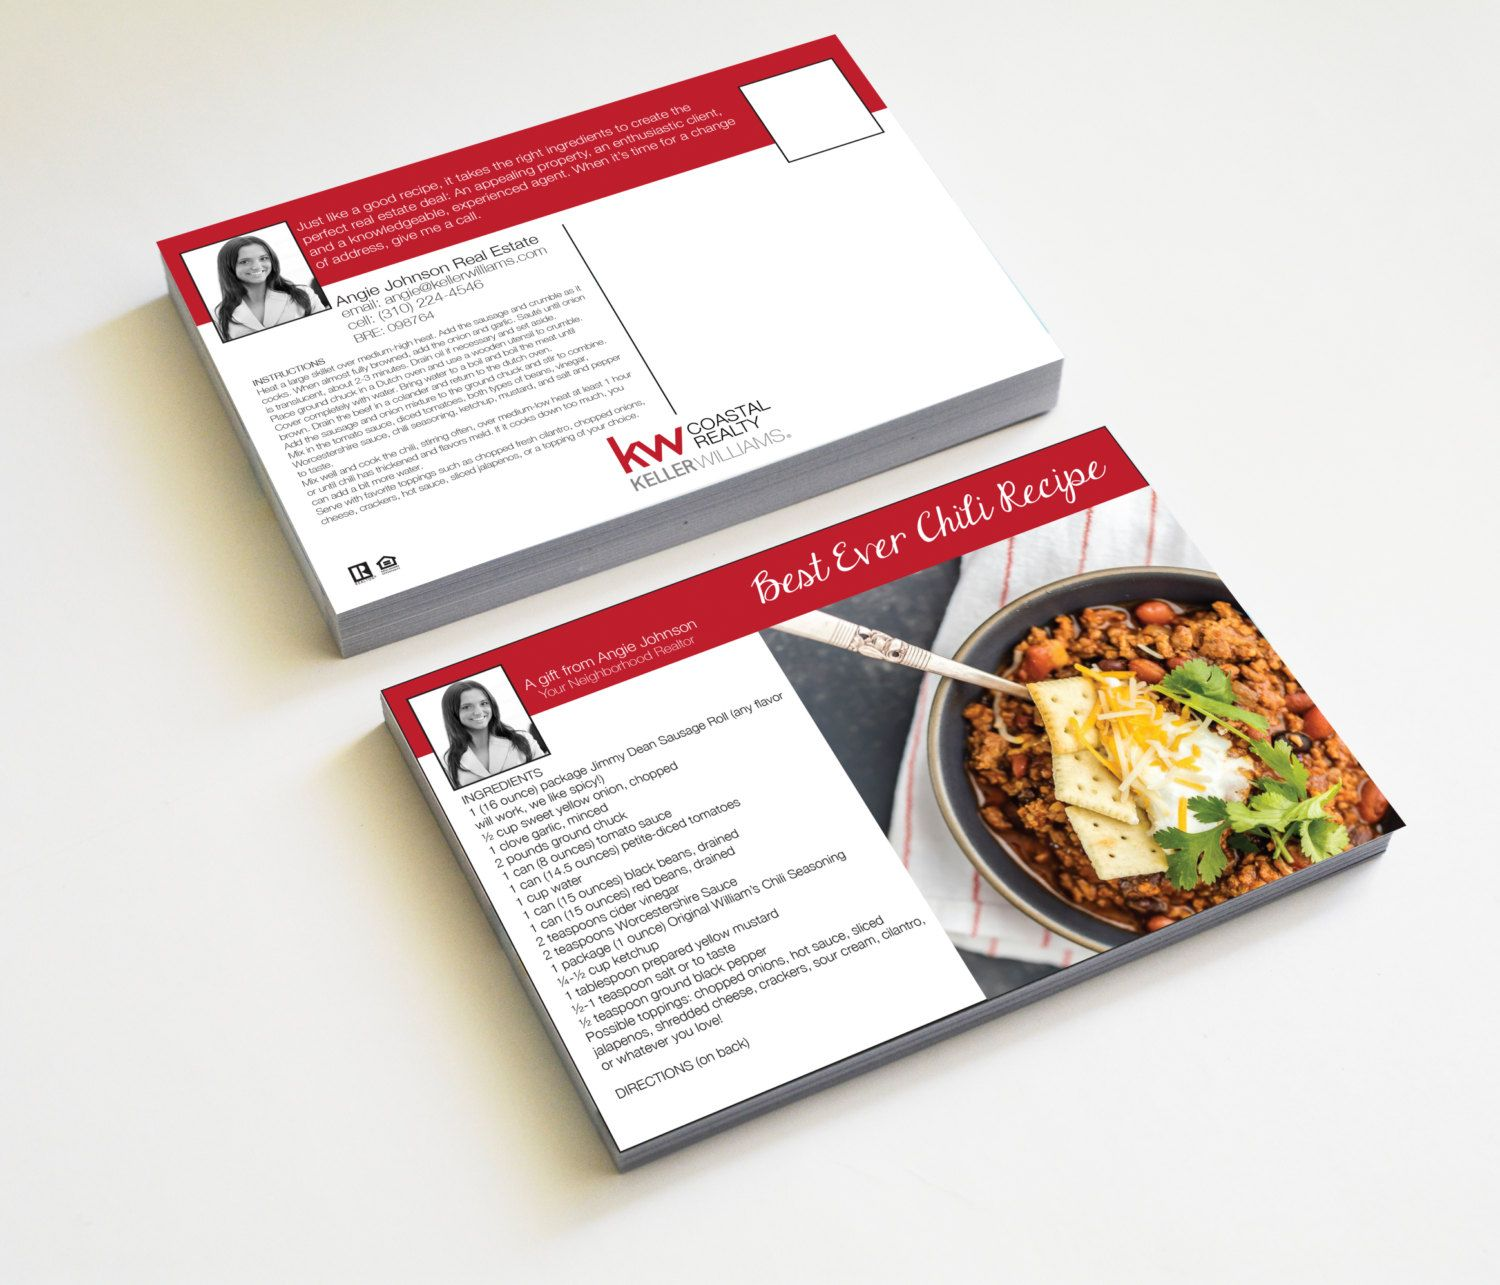 On sale now realtor real estate postcards recipe card business realtor real estate postcards recipe card business cards keller williams color both sides chili for farming century 21 remax exit by realtordesigns on magicingreecefo Choice Image